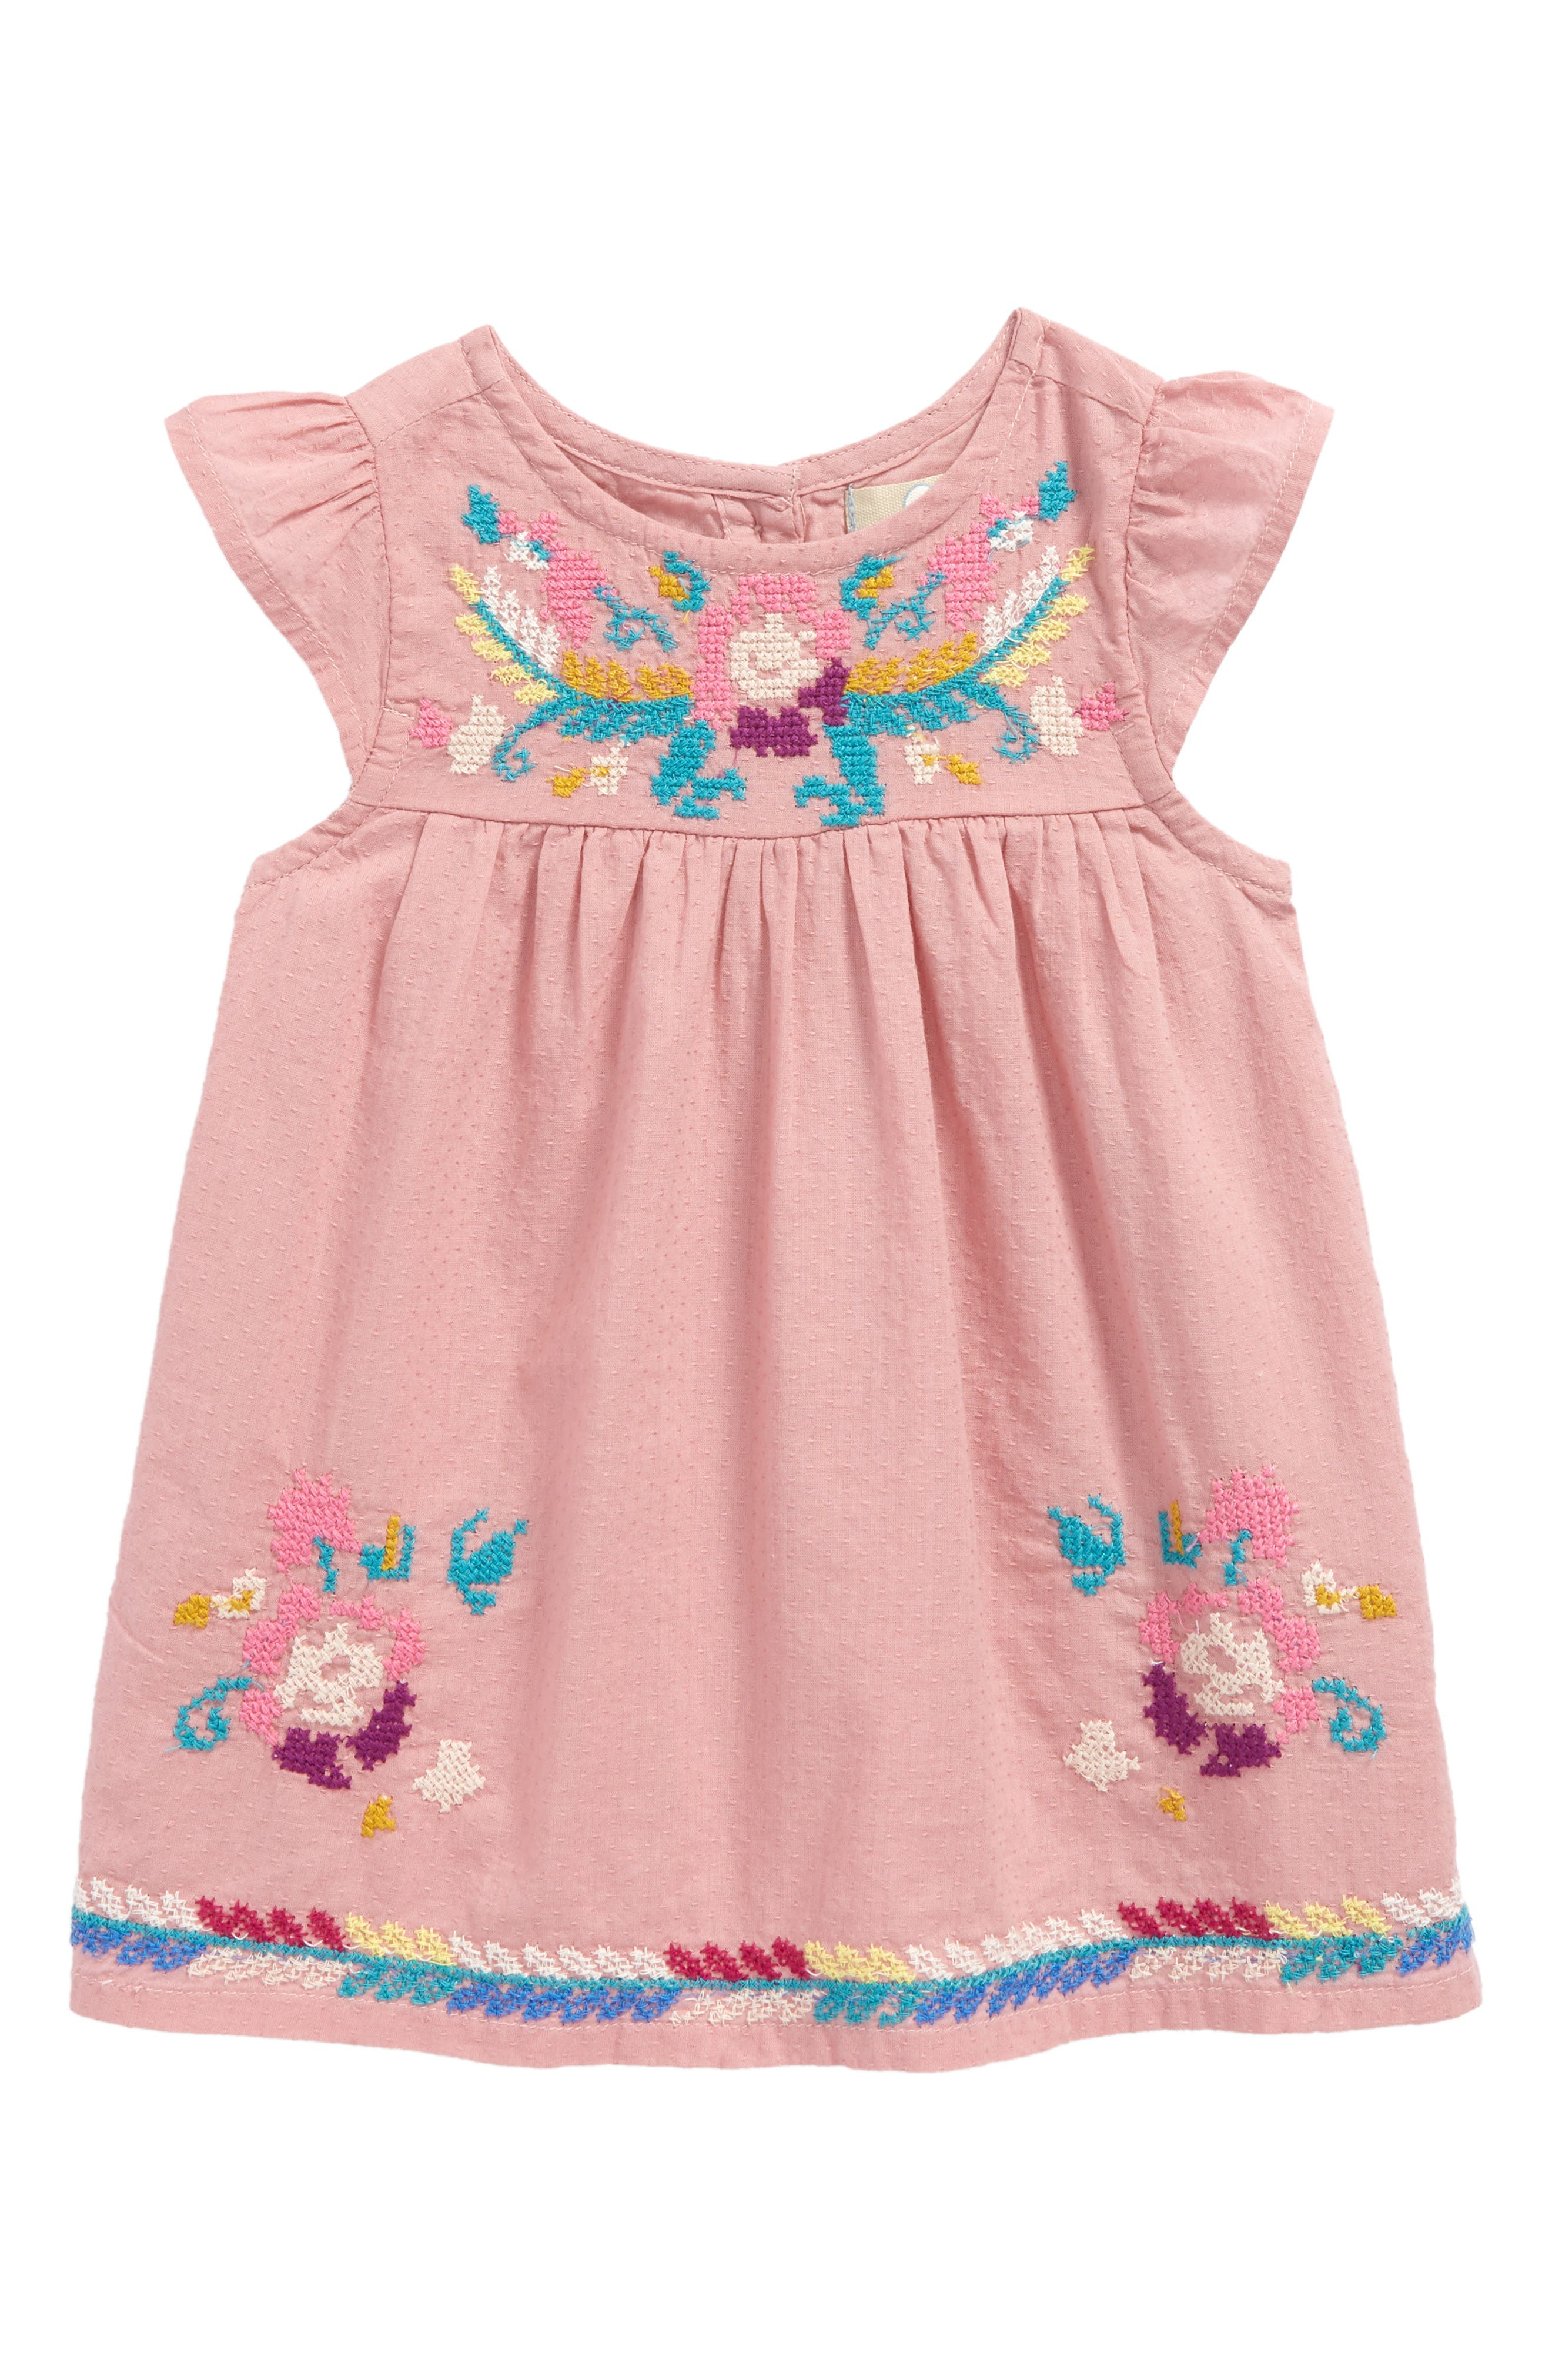 Delilah Embroidered Dress,                         Main,                         color, Pink Multi